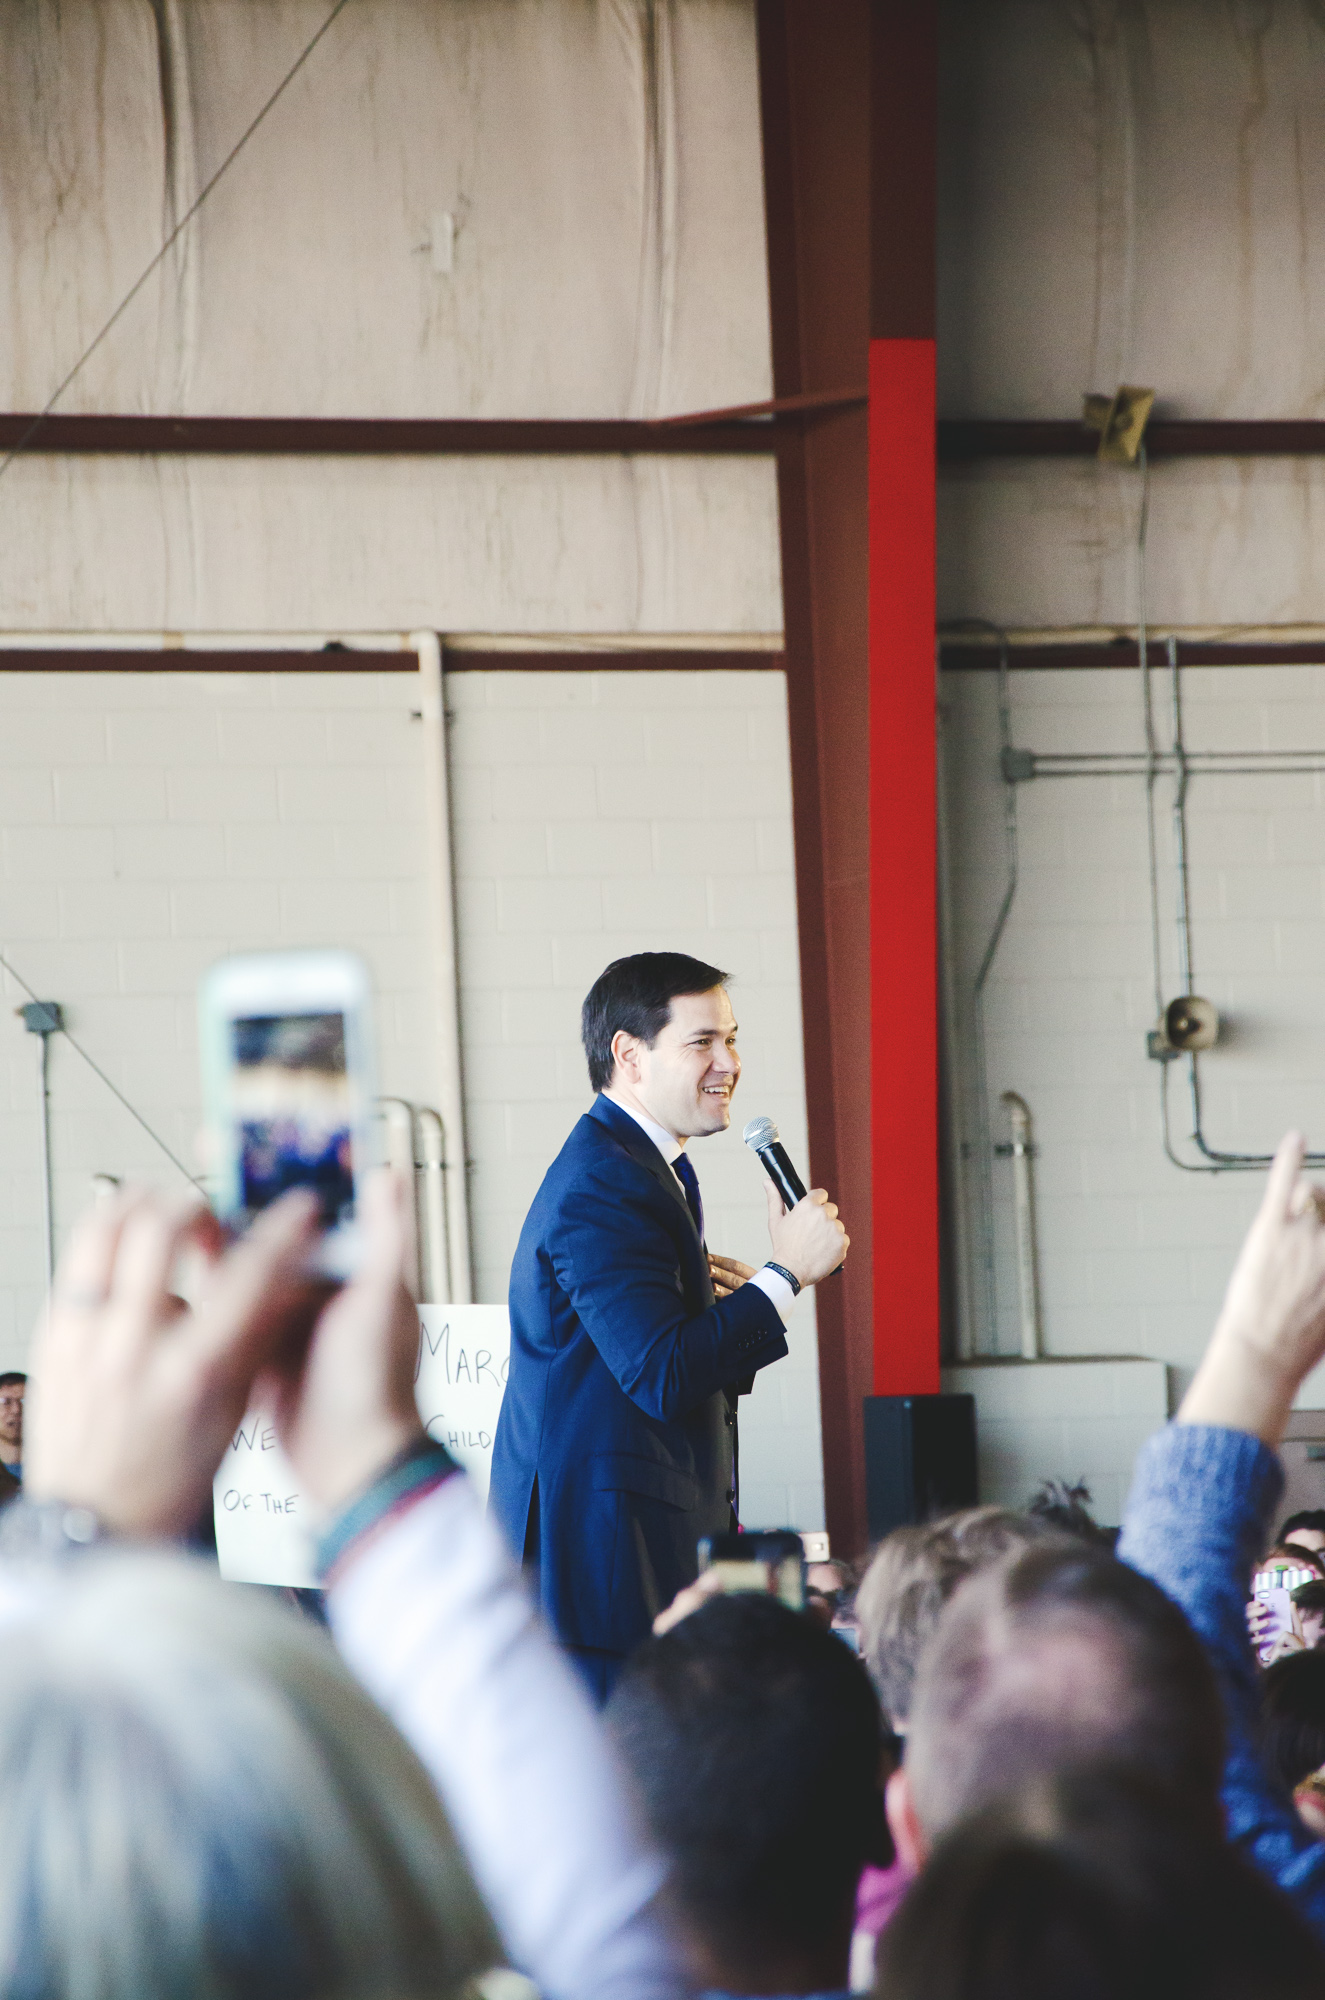 Marco Rubio in Knoxville